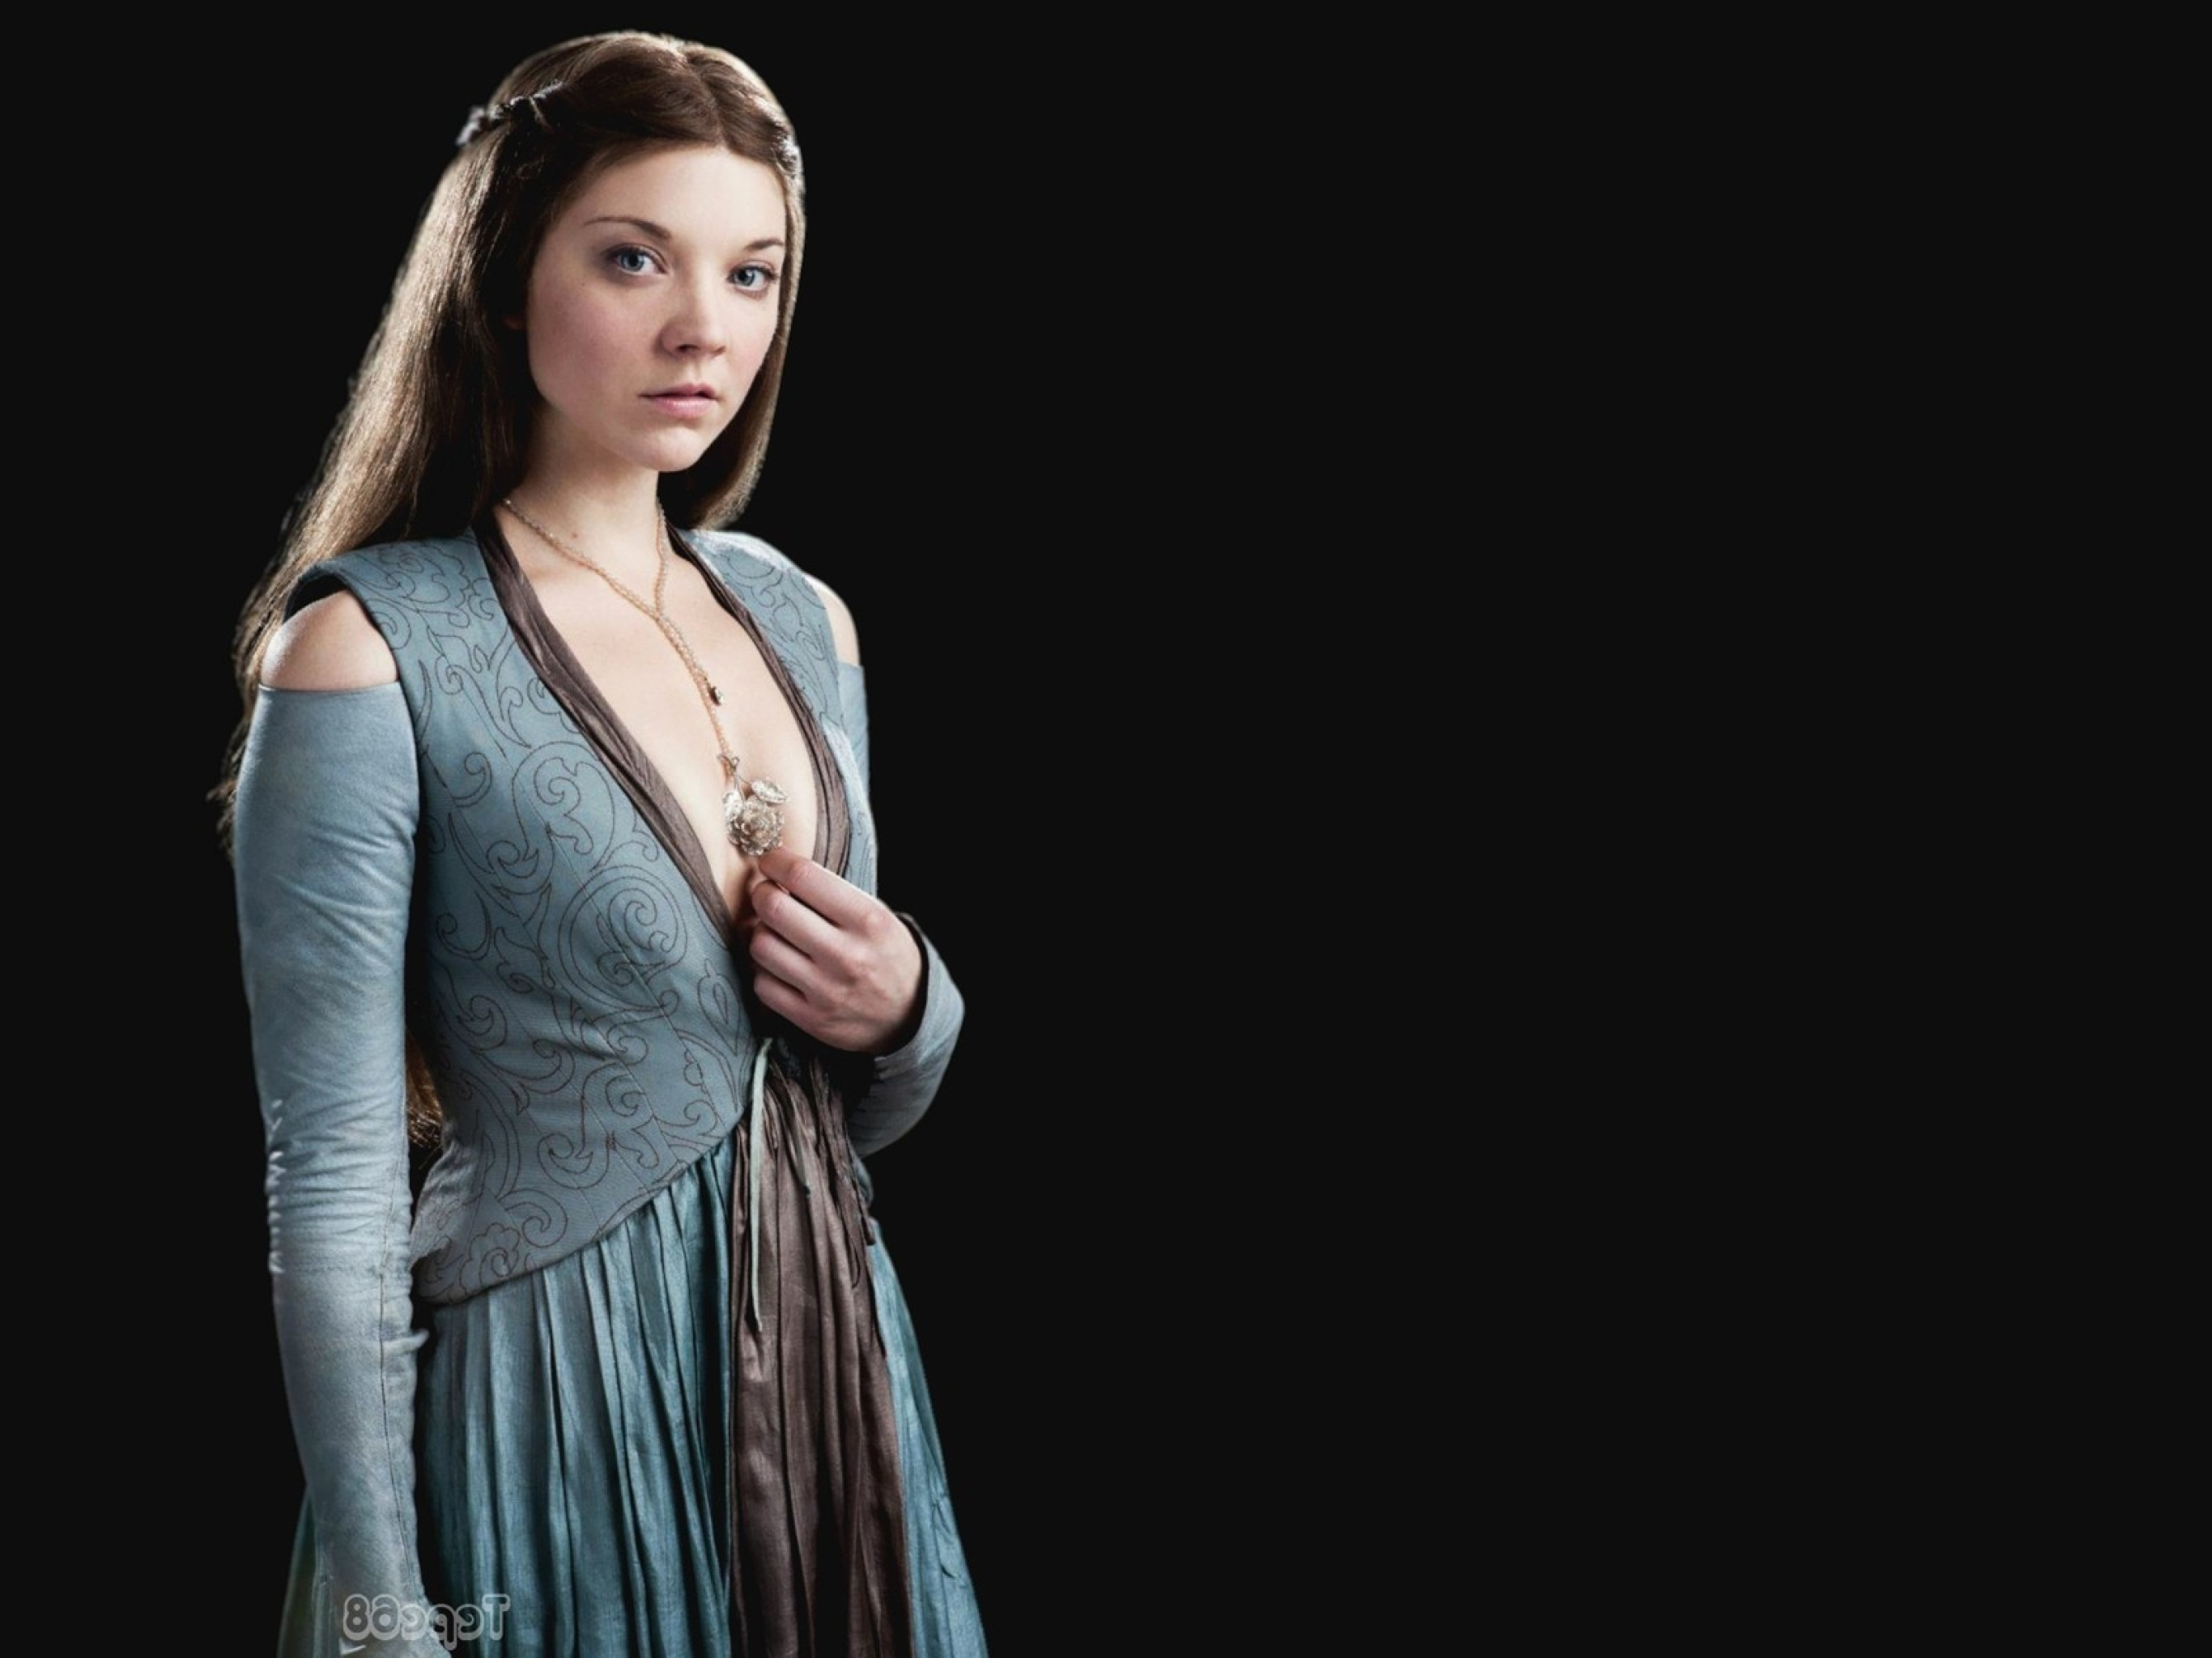 2732x2048 Natalie Dormer In Game Of Thrones Hd Wallpaper 01